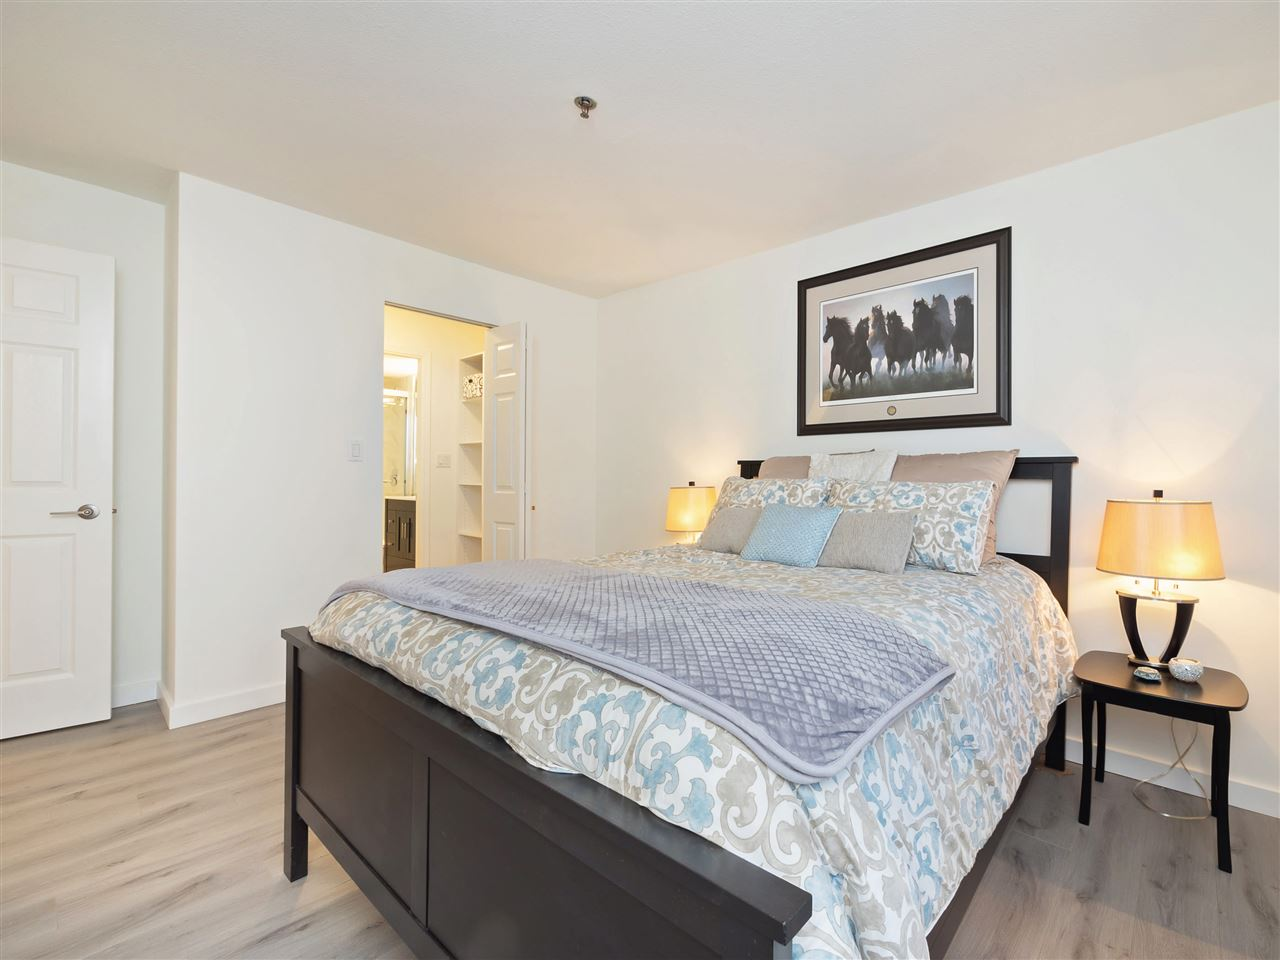 Condo Apartment at 211 1148 WESTWOOD STREET, Unit 211, Coquitlam, British Columbia. Image 13